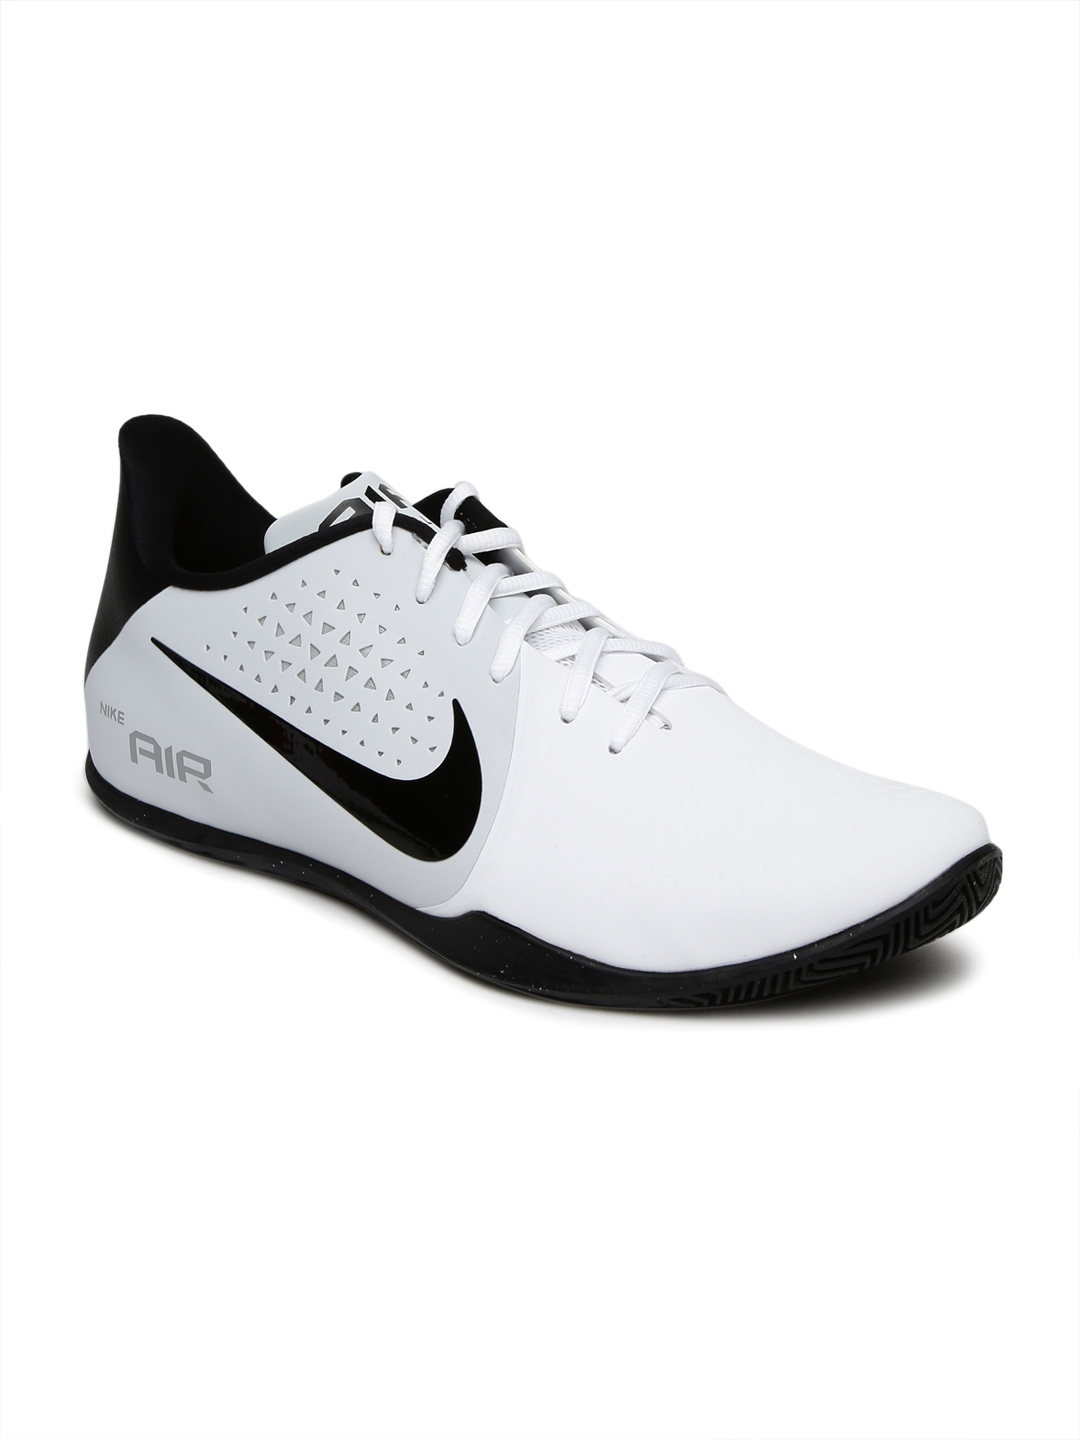 98a0b2ba63f1 11493284429823-Nike-Men-White--Black-Air-Behold-Low-Basketball-Shoes -241493284429706-1.jpg